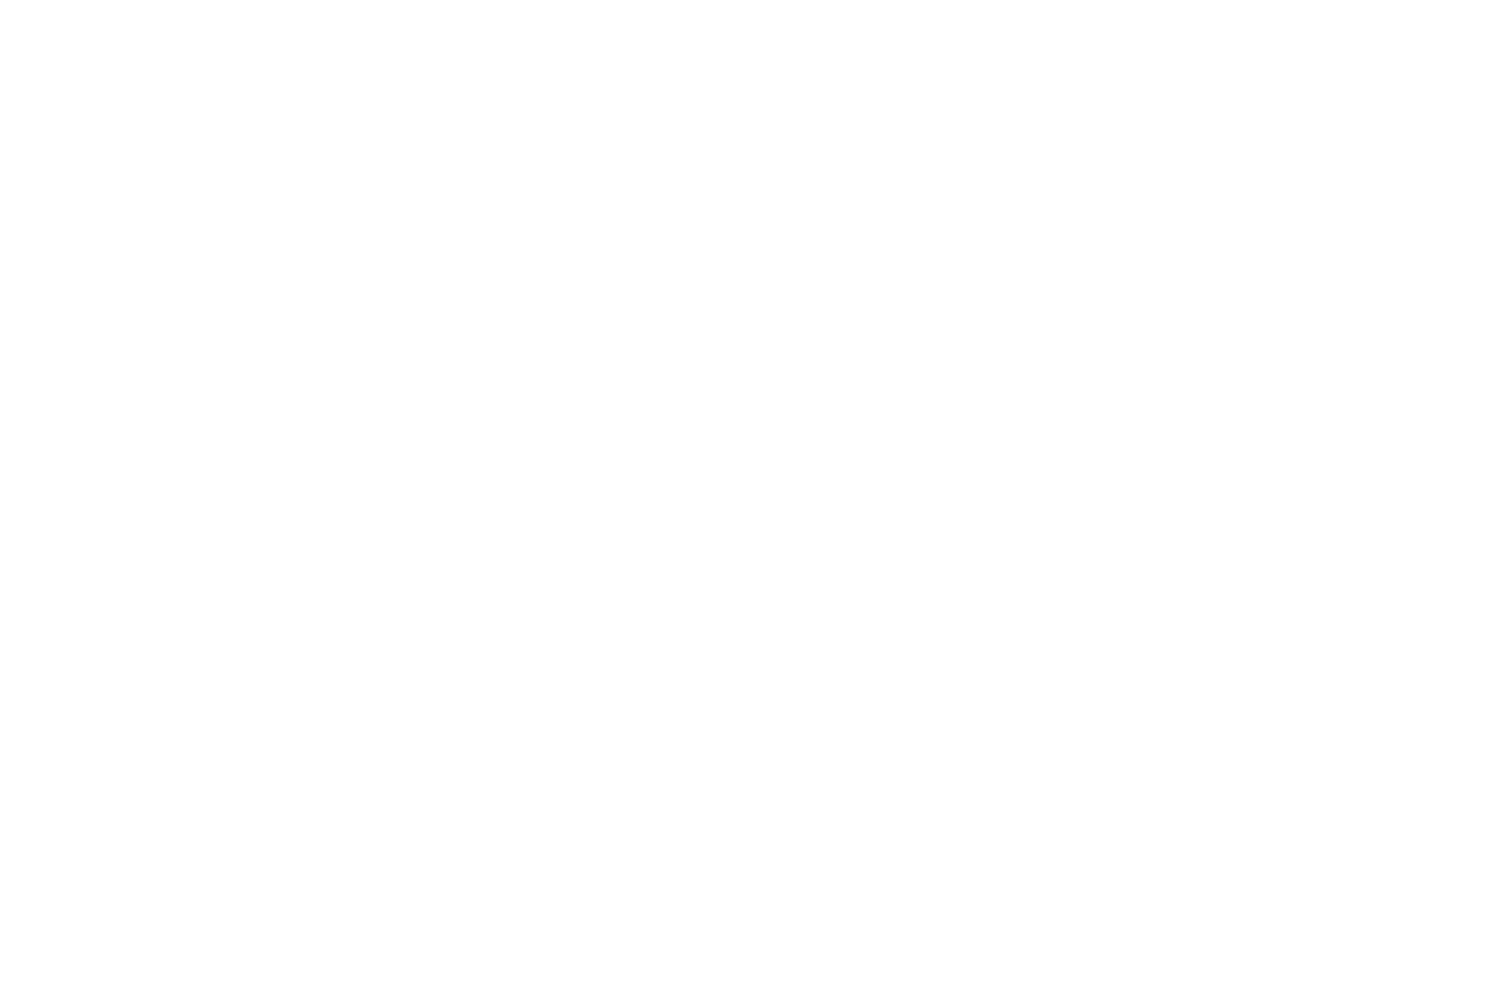 product-hunt_logo.png